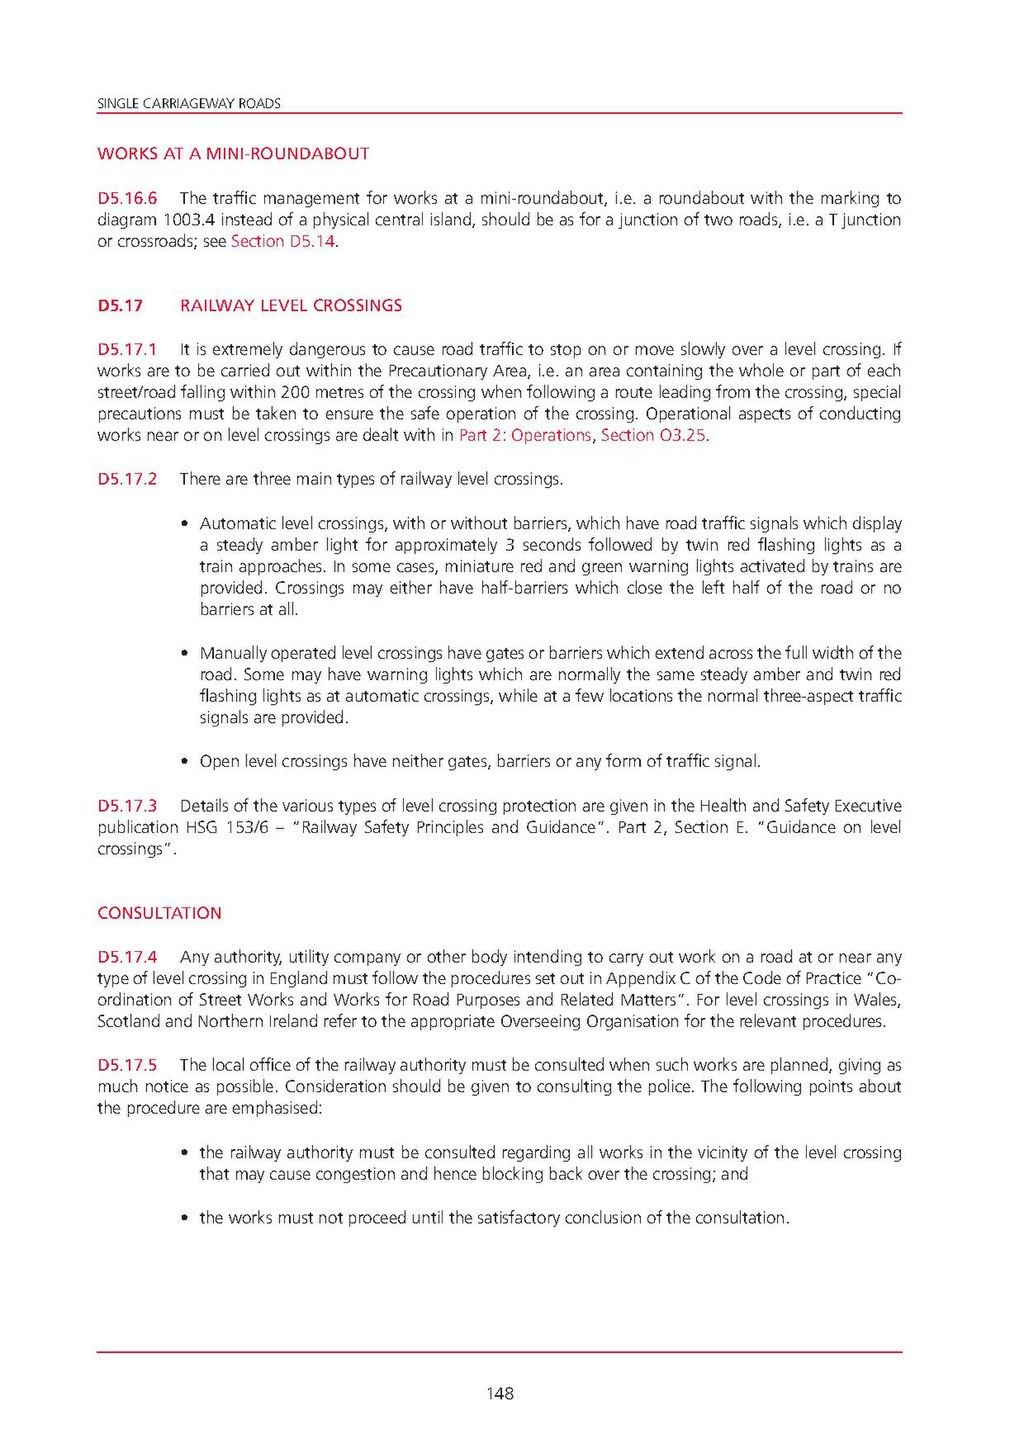 Pageuk traffic signs manual chapter 8 part 1 traffic safety measures and signs for road designs 2009 pdf 149